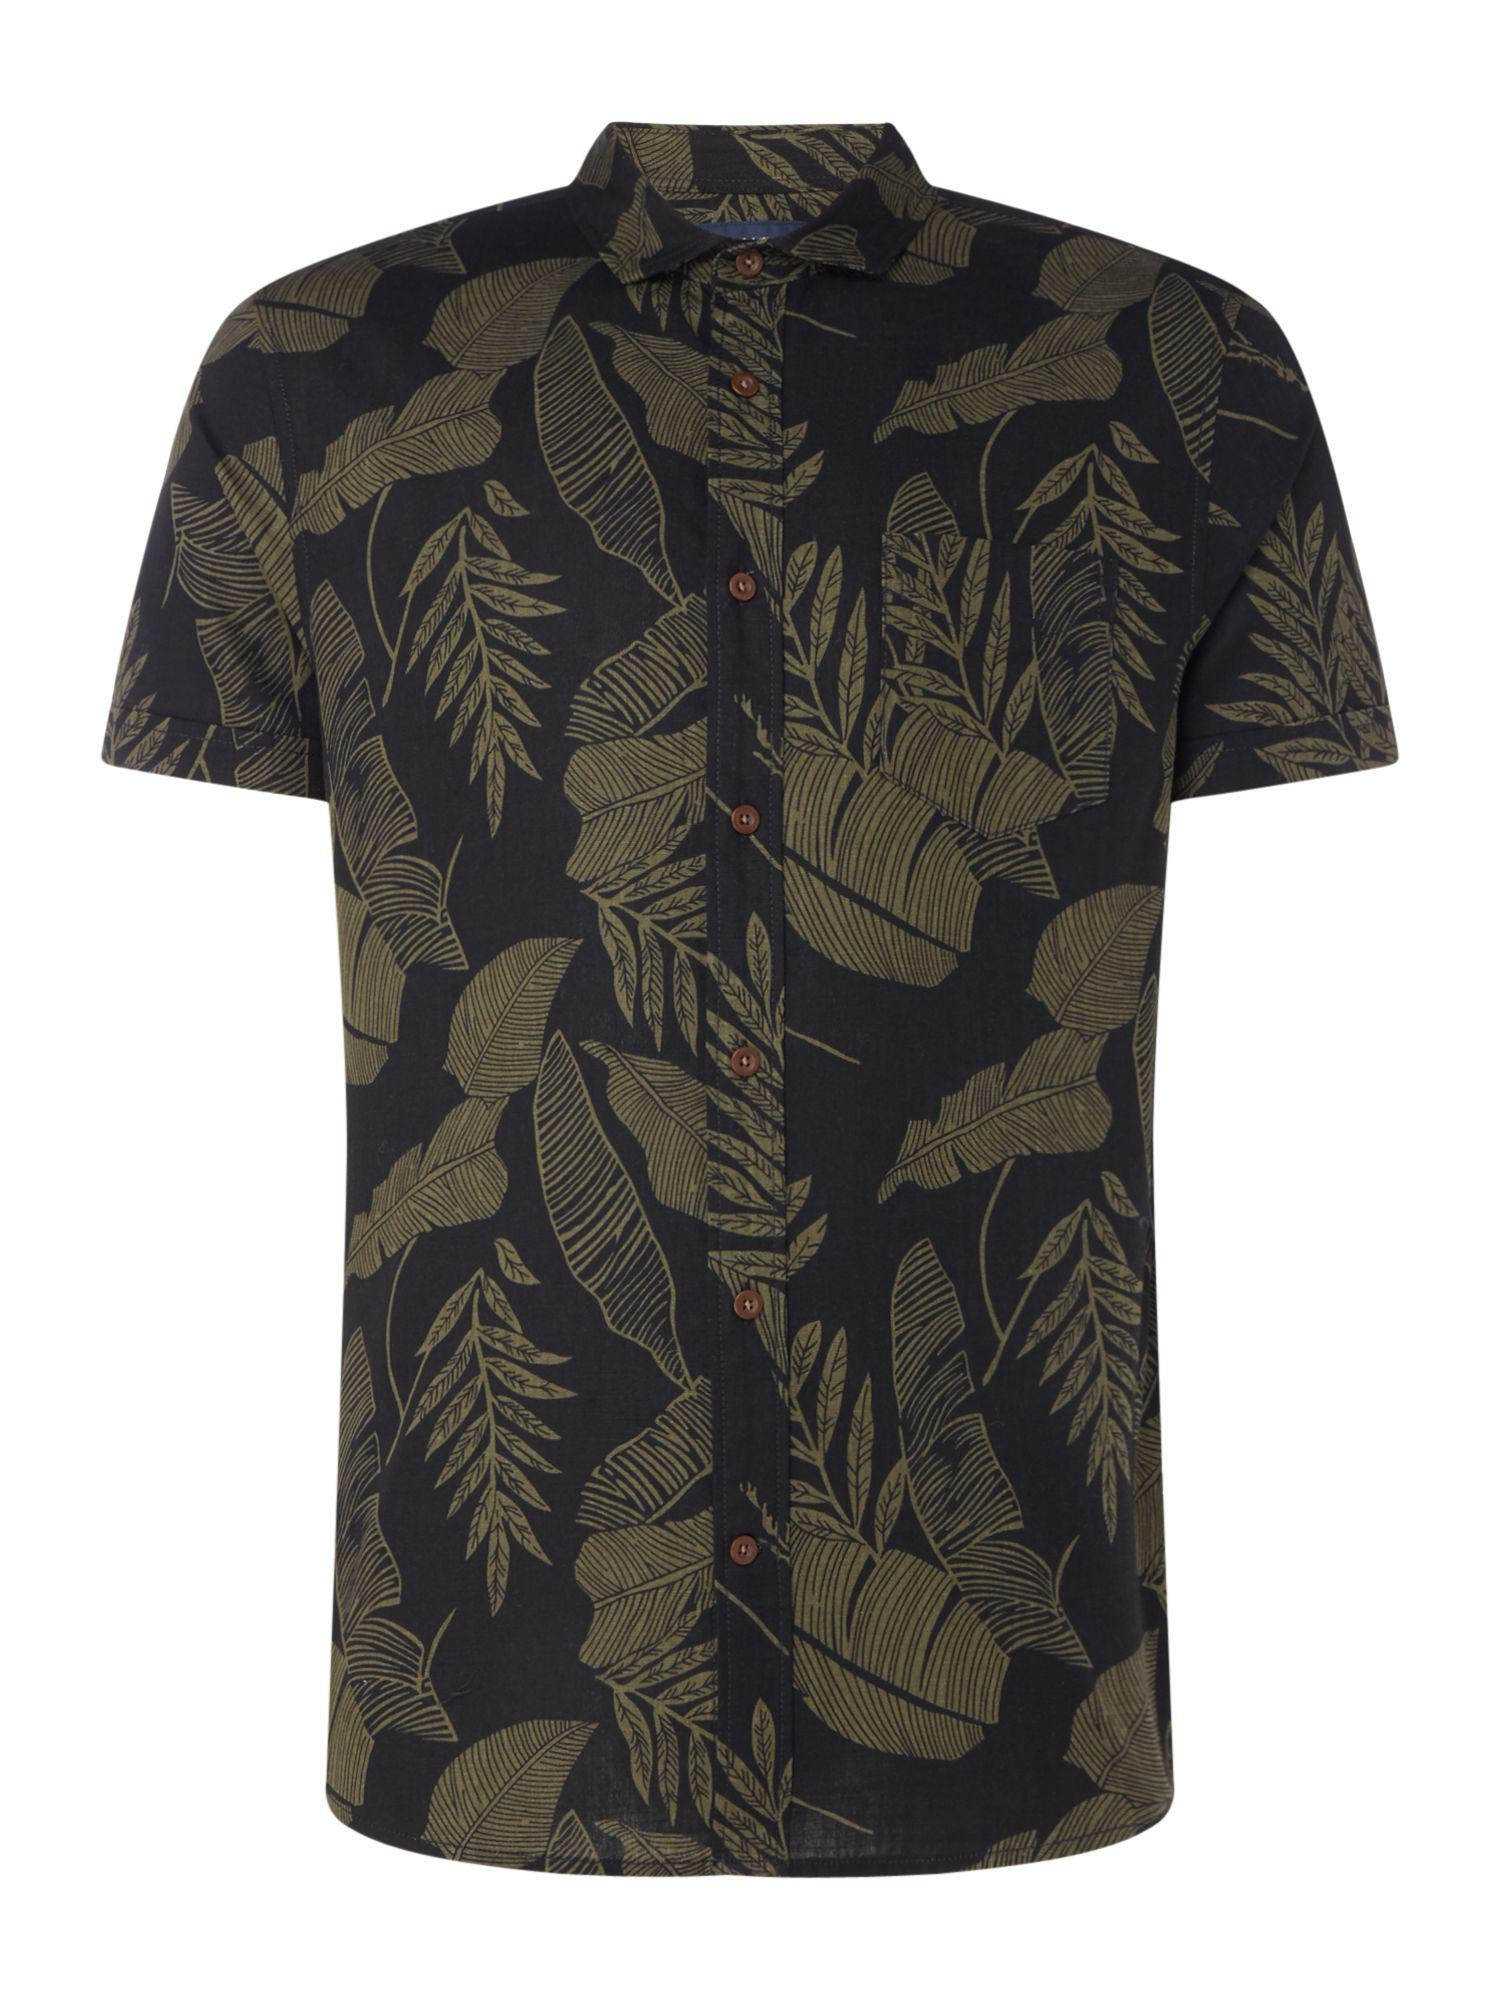 Lyst criminal men 39 s jungle leaf print short sleeve shirt for Housse of fraser